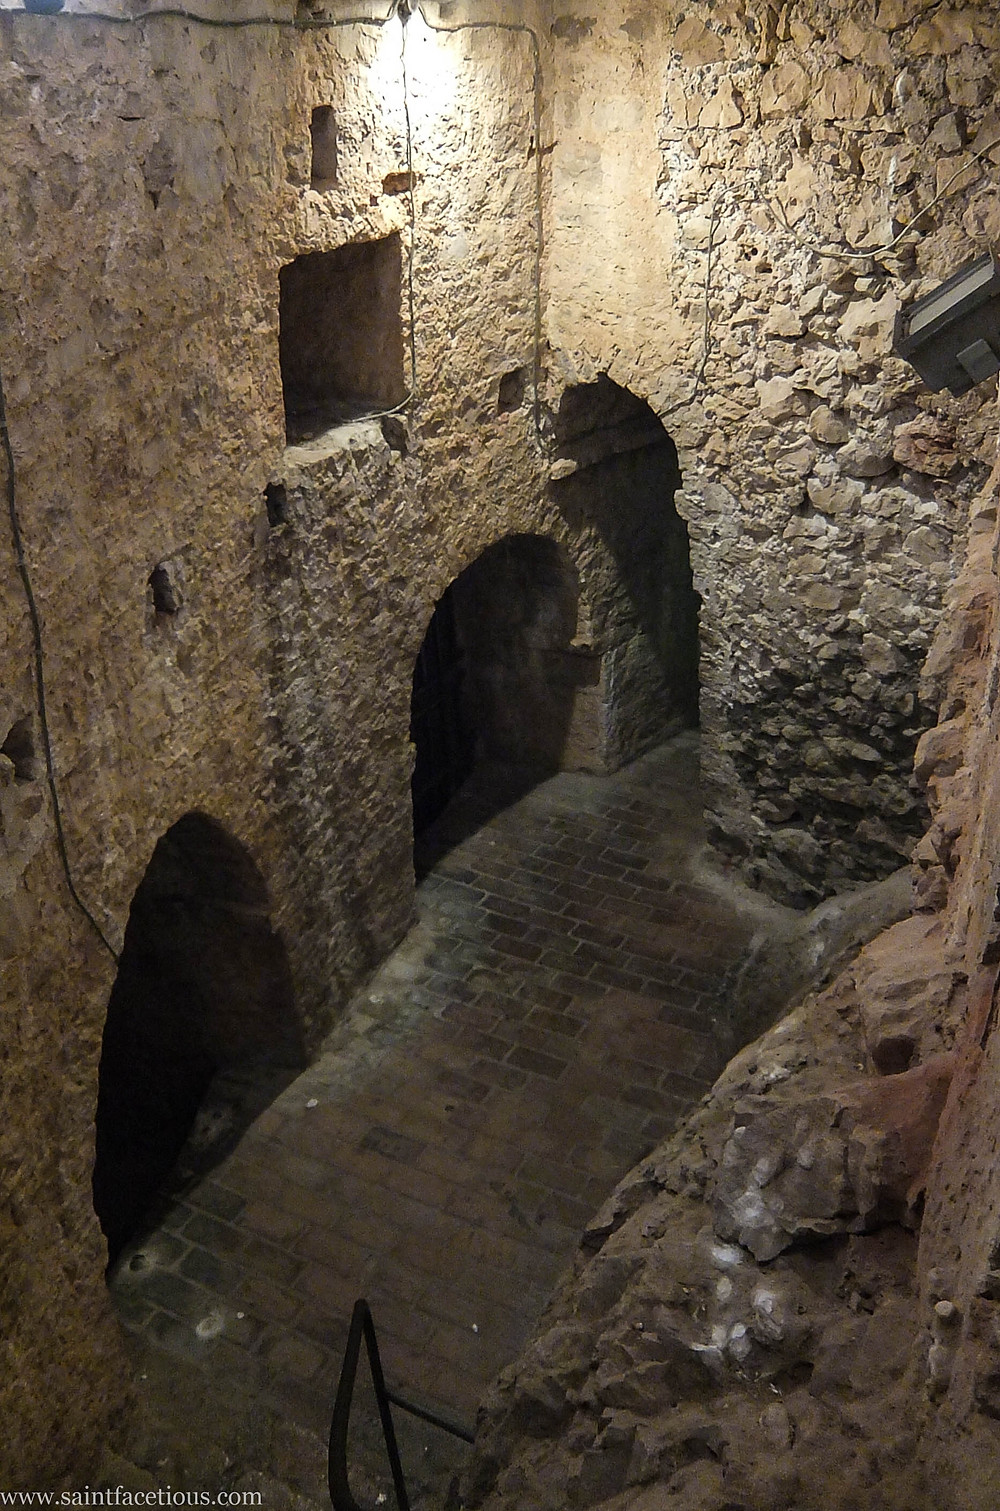 The dungeon. The Dalmatian coast is the most beautiful in the world. Hvar is the place to go for the partying and with a majestic castle view. Read the blog for more.